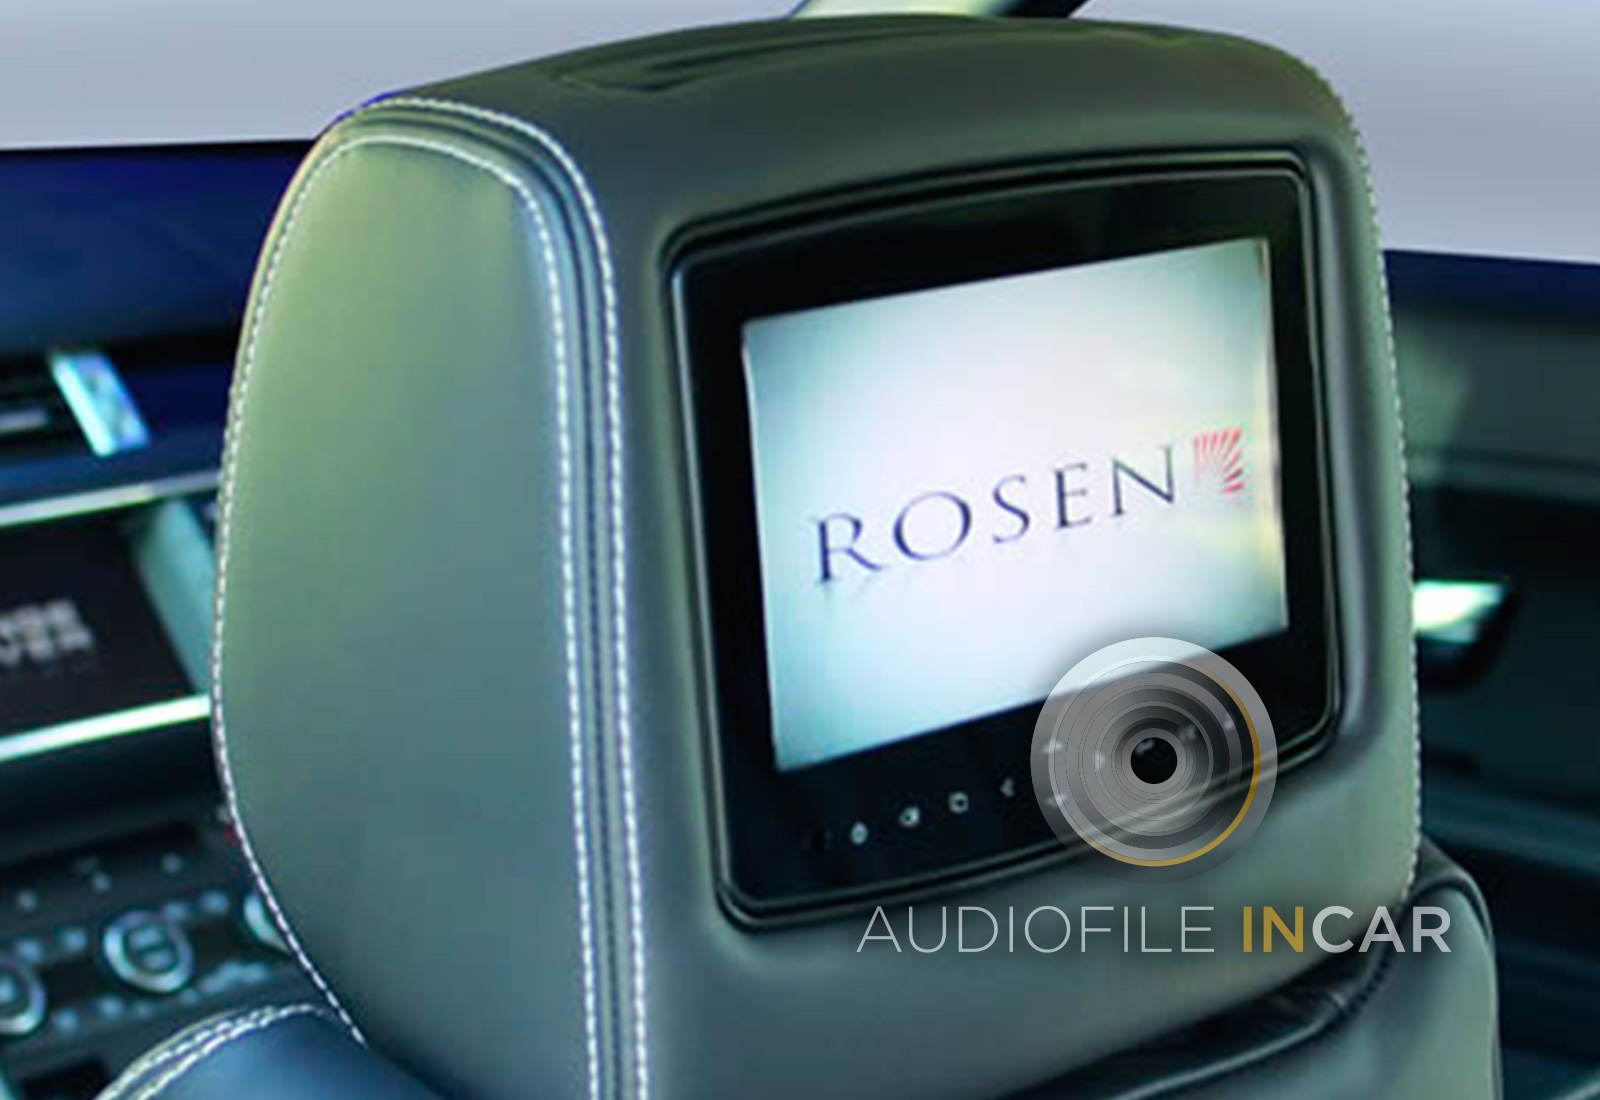 Rosen AV 7900 Replacement Headrest Entertainment Systems